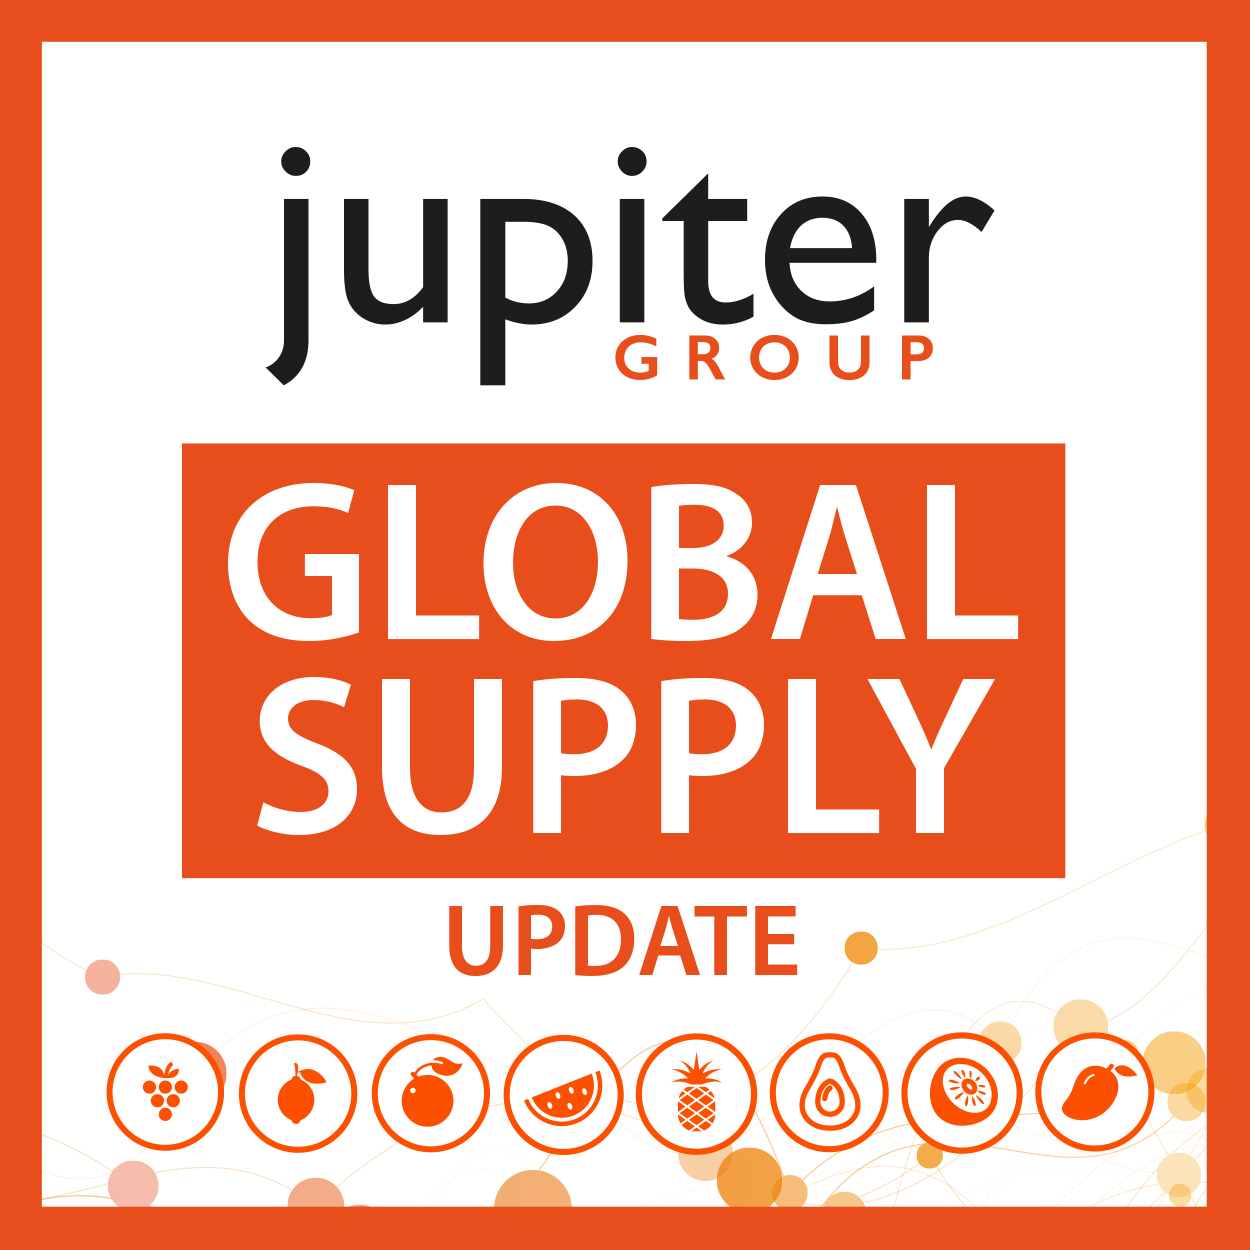 Jupiter Group's global supply update